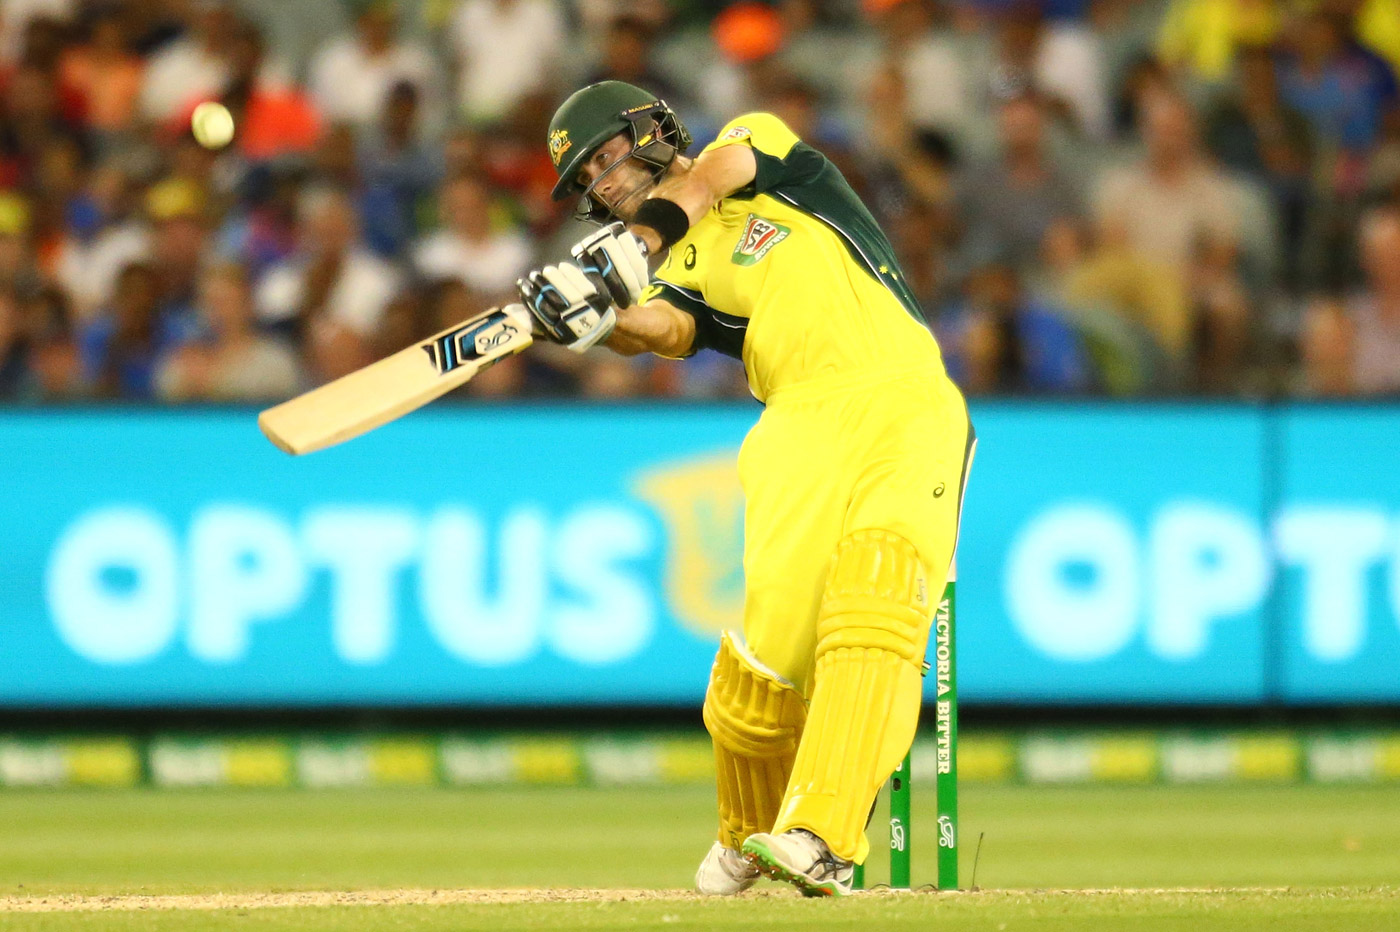 Glenn Maxwell is routinely able to hit flat, straight sixes because his top hand